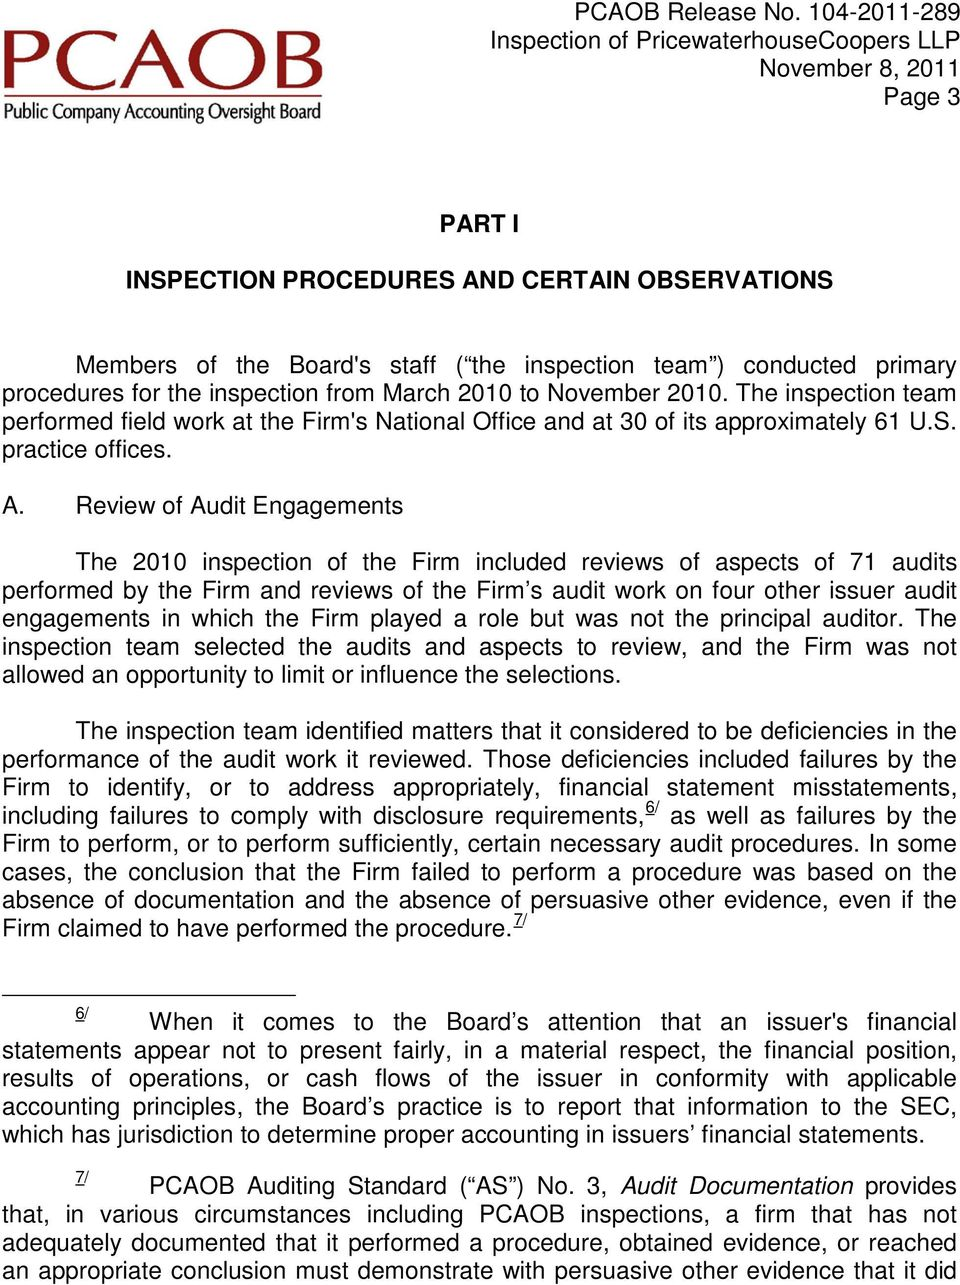 Review of Audit Engagements The 2010 inspection of the Firm included reviews of aspects of 71 audits performed by the Firm and reviews of the Firm s audit work on four other issuer audit engagements